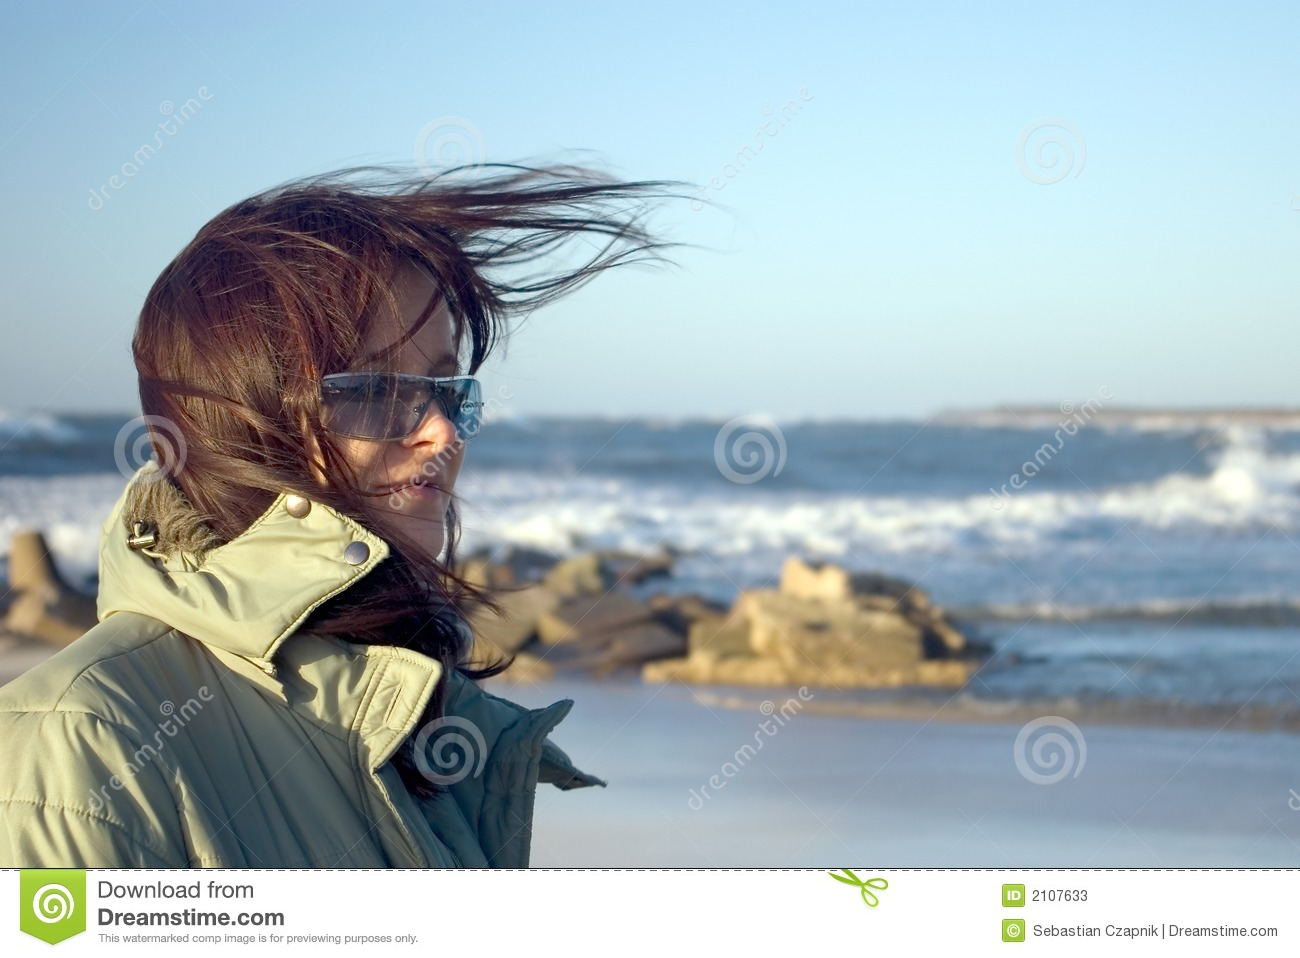 woman and windy sea